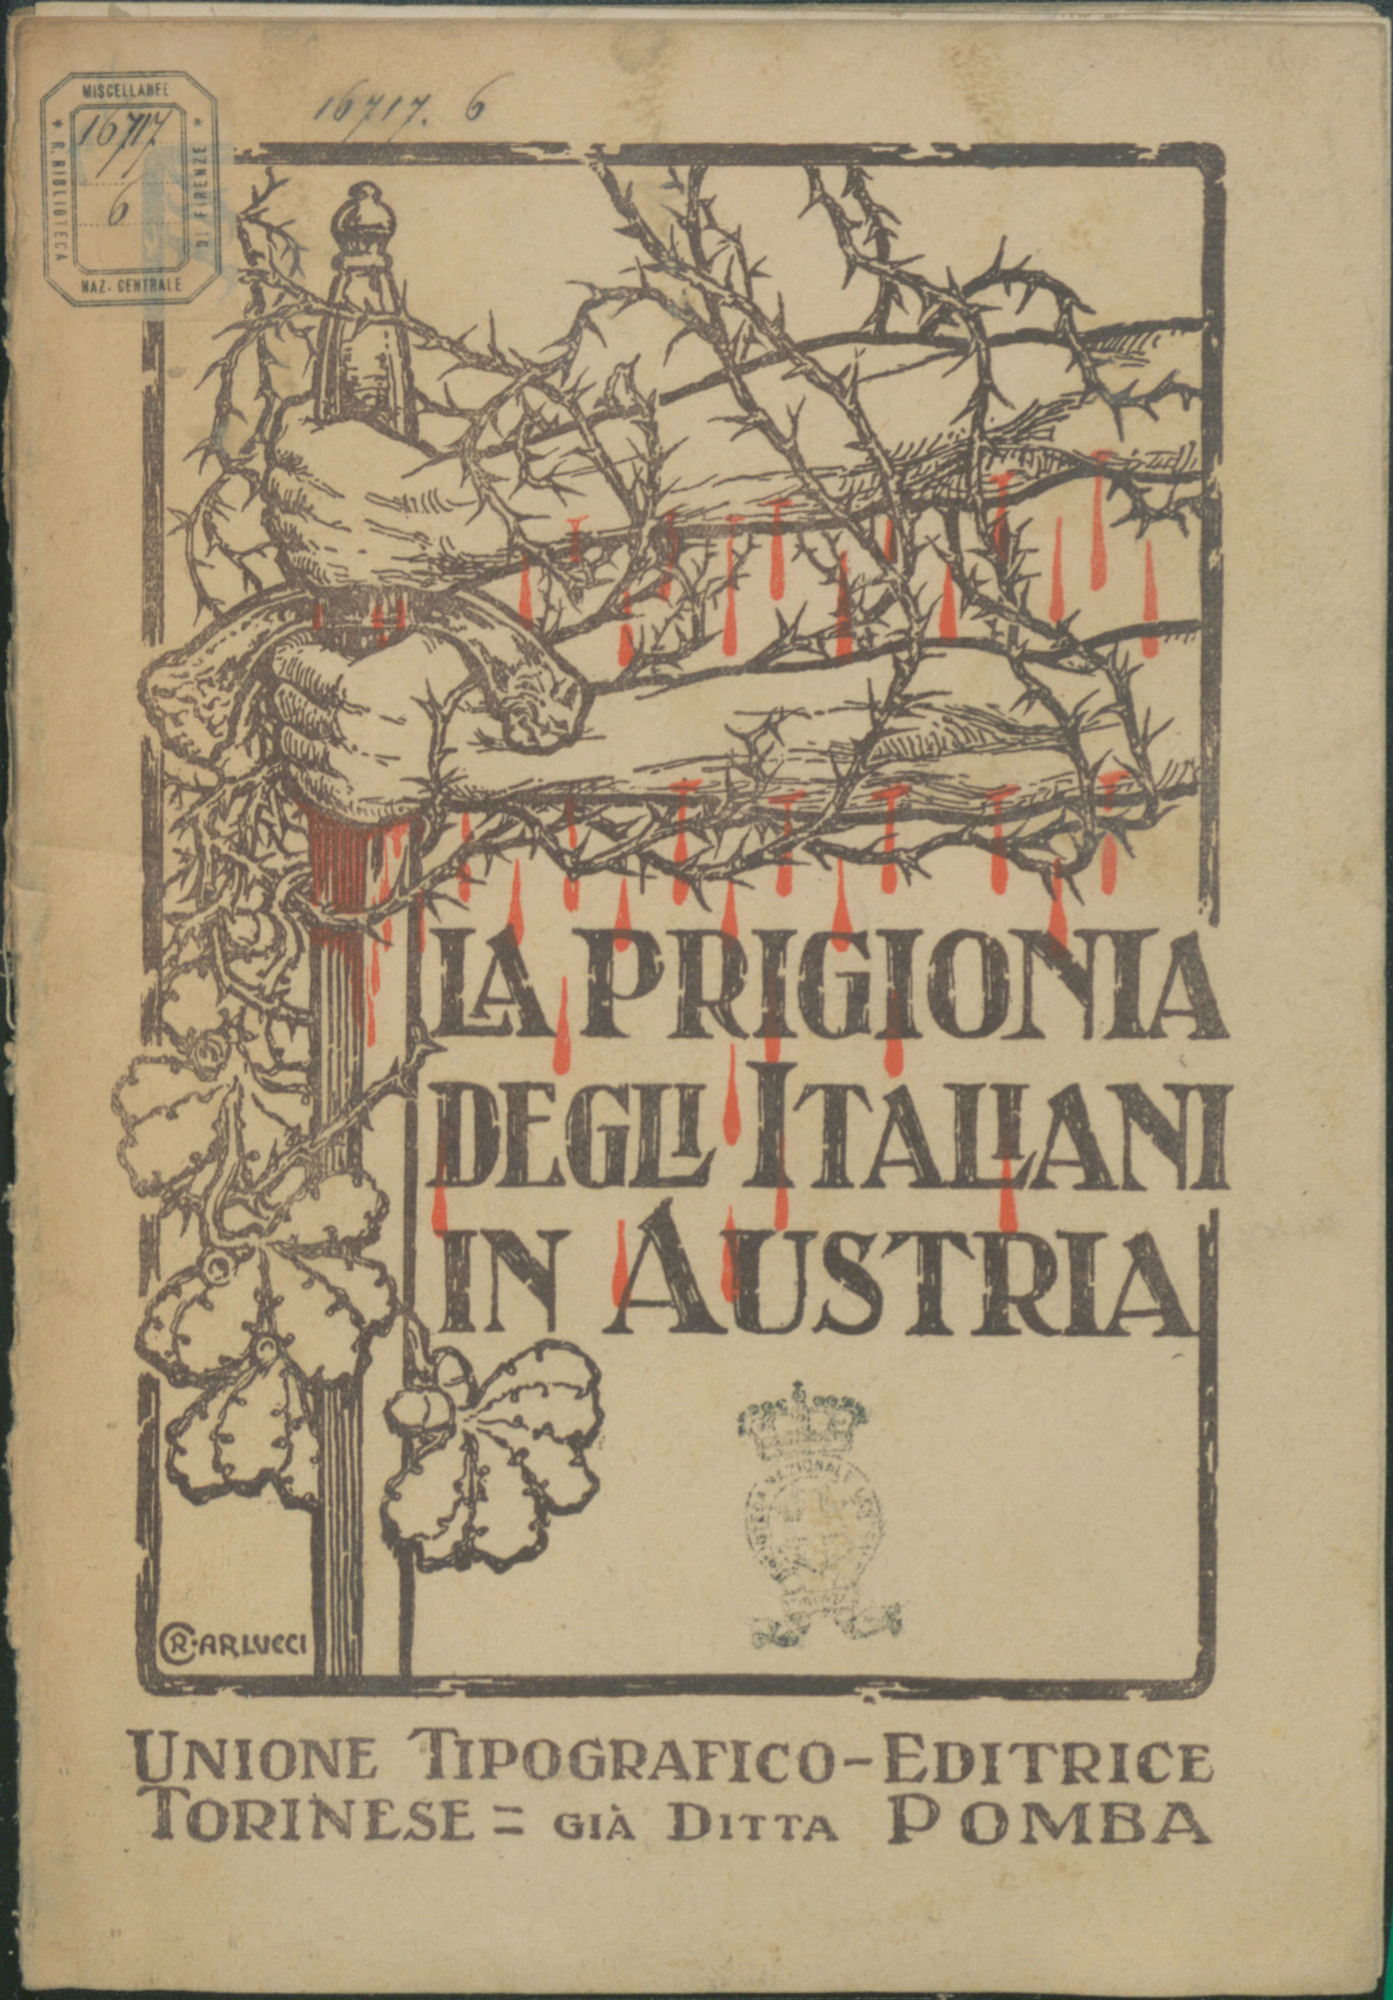 Italian prisoners of war in Austria: impressions and memories